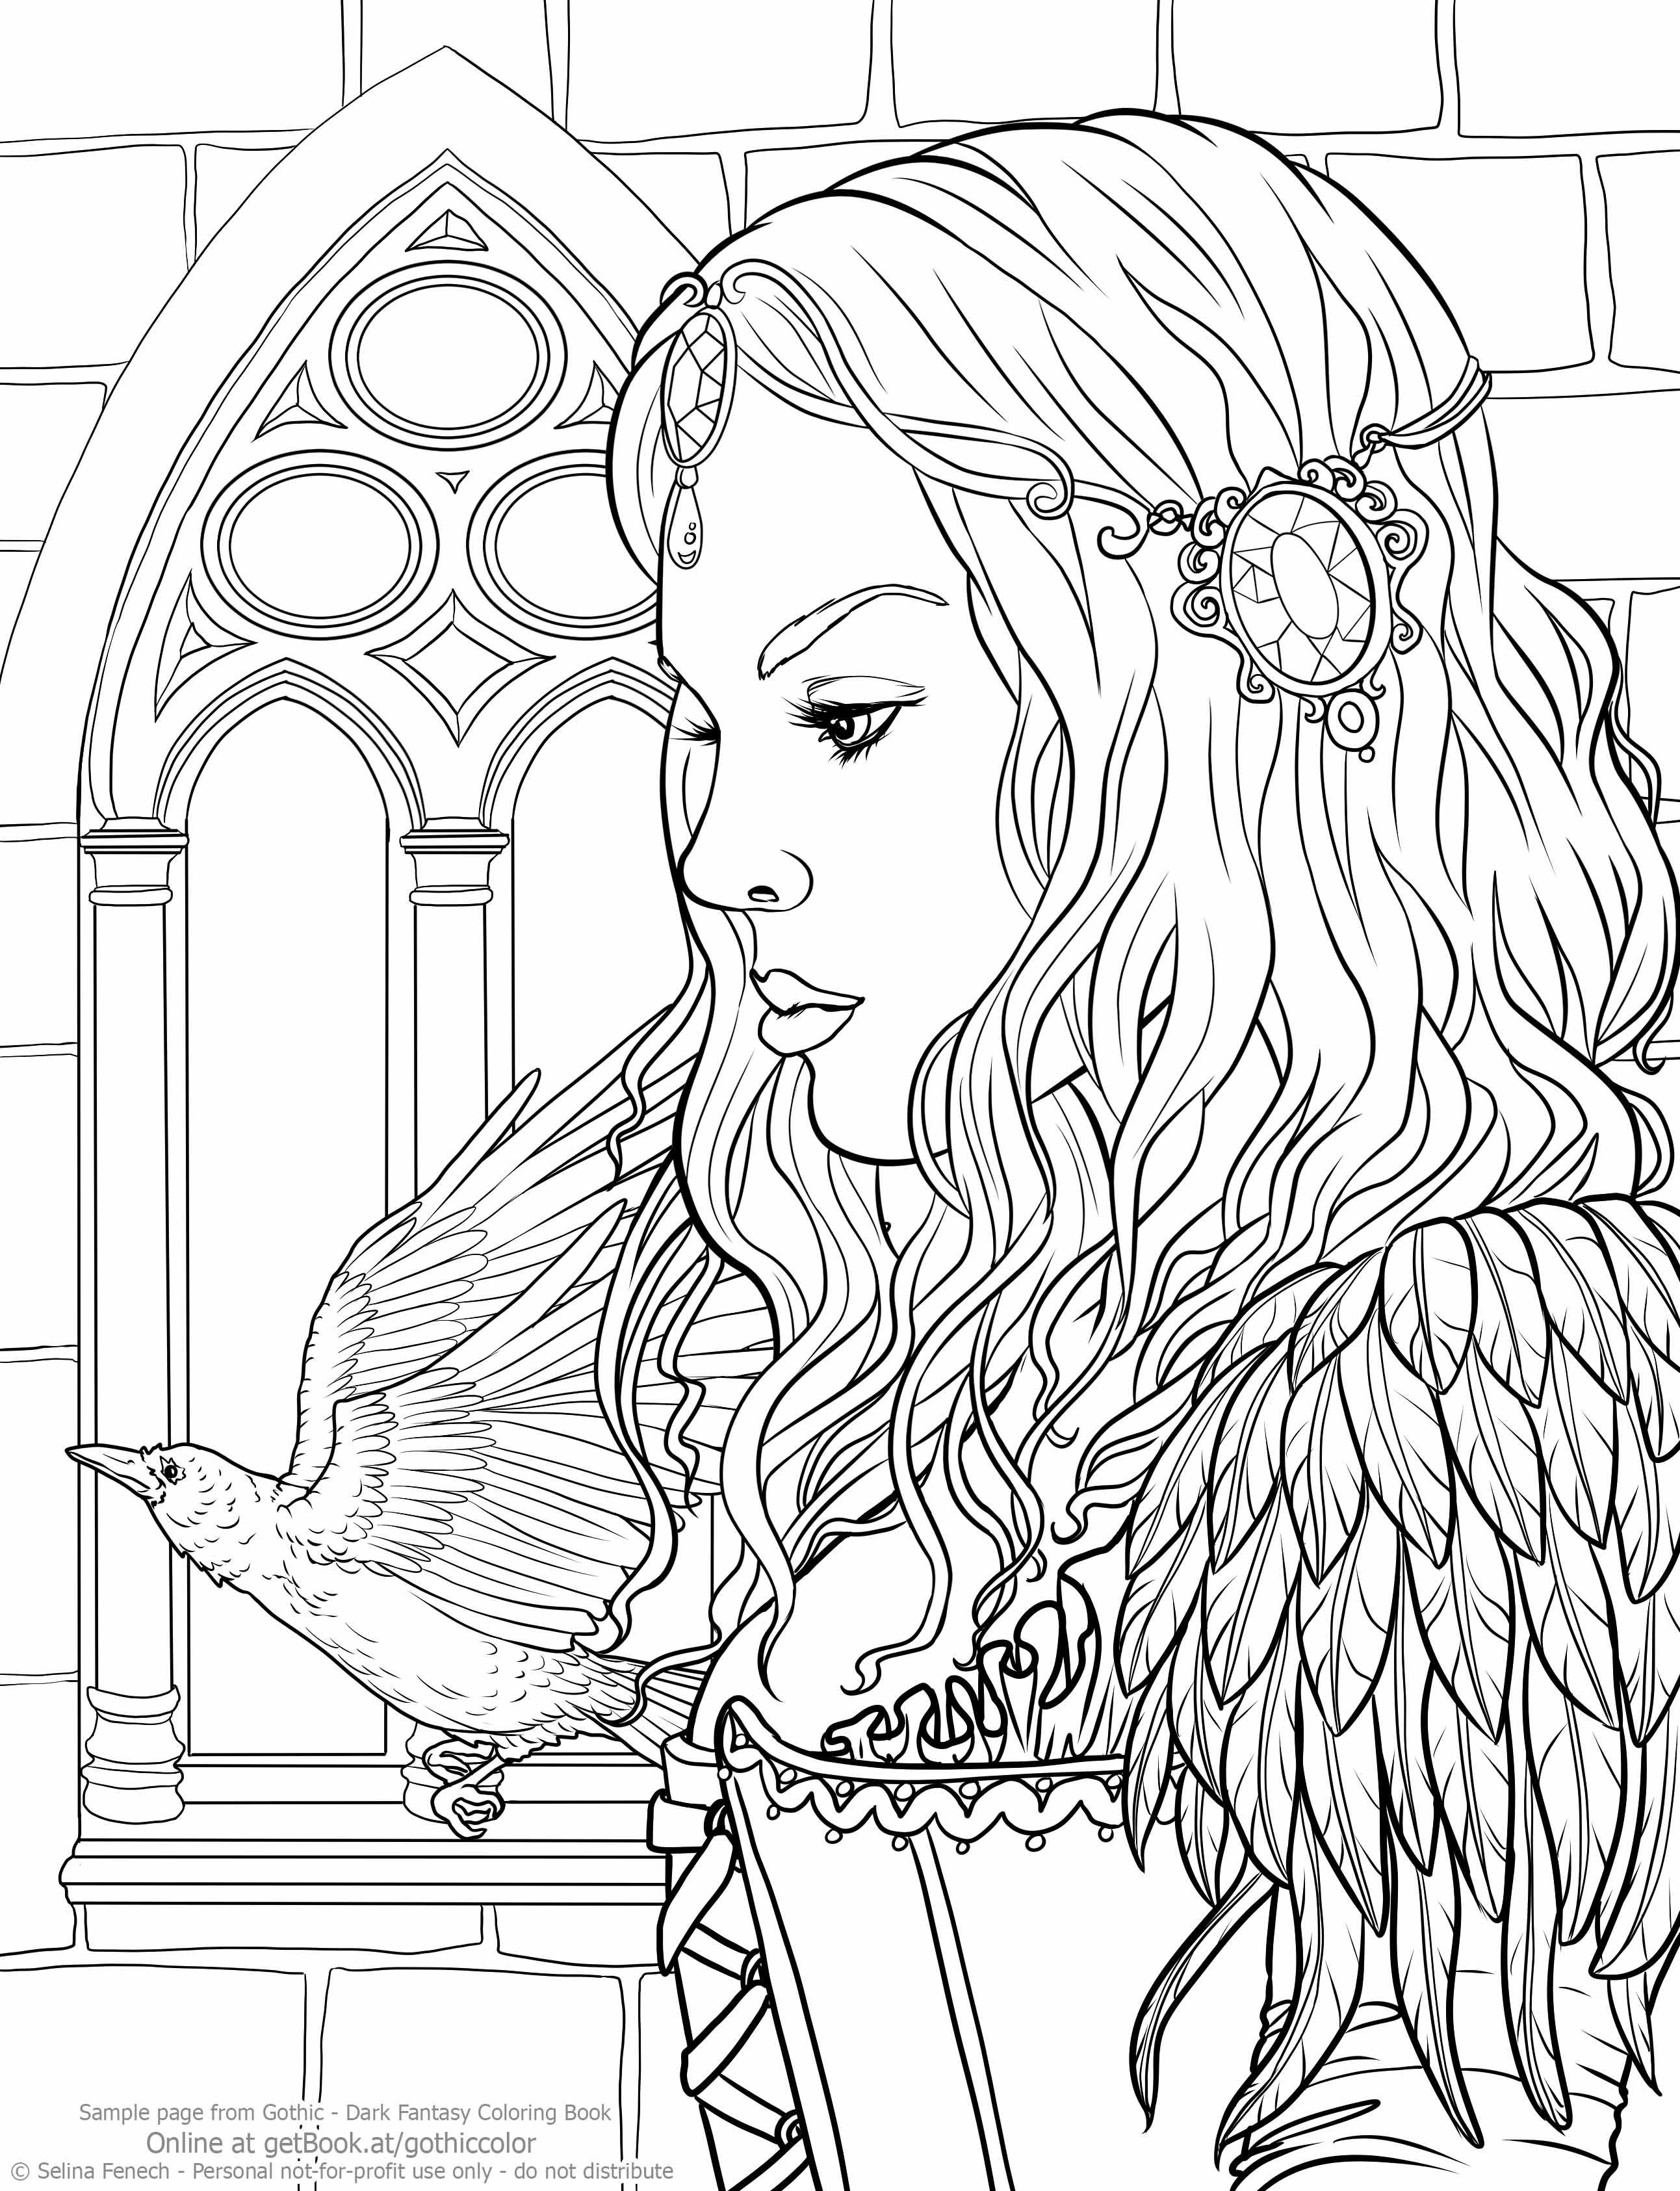 selinafenech_gothiccoloringbook_ravenscall | Wiccan | Pinterest ...